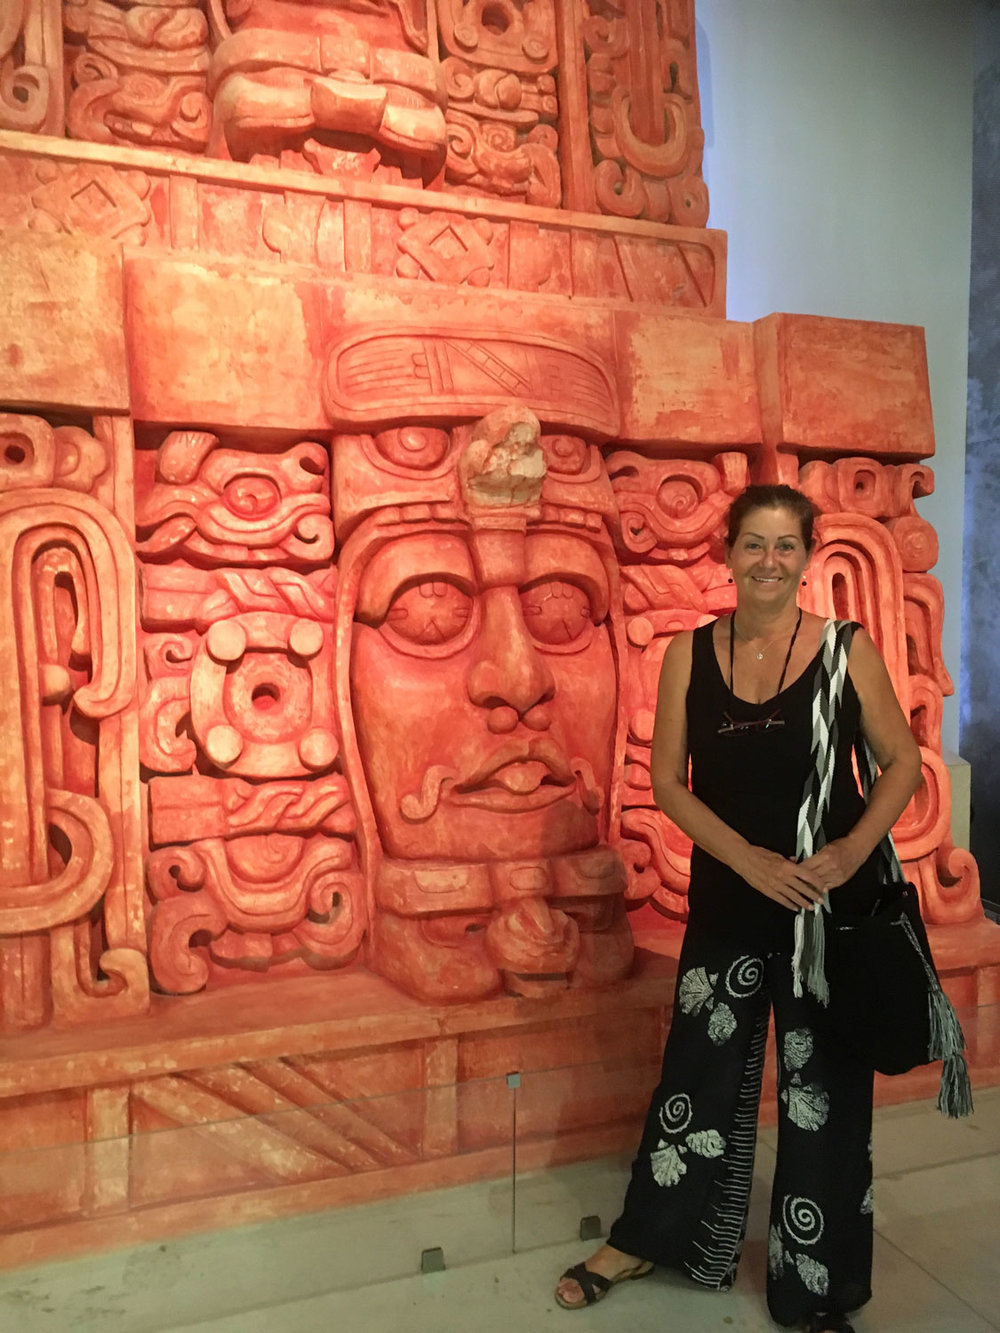 The Mayan World Museum really has the shape of the sacred tree. I am standing in front of the sculpture of the Kohunlich Sun God.